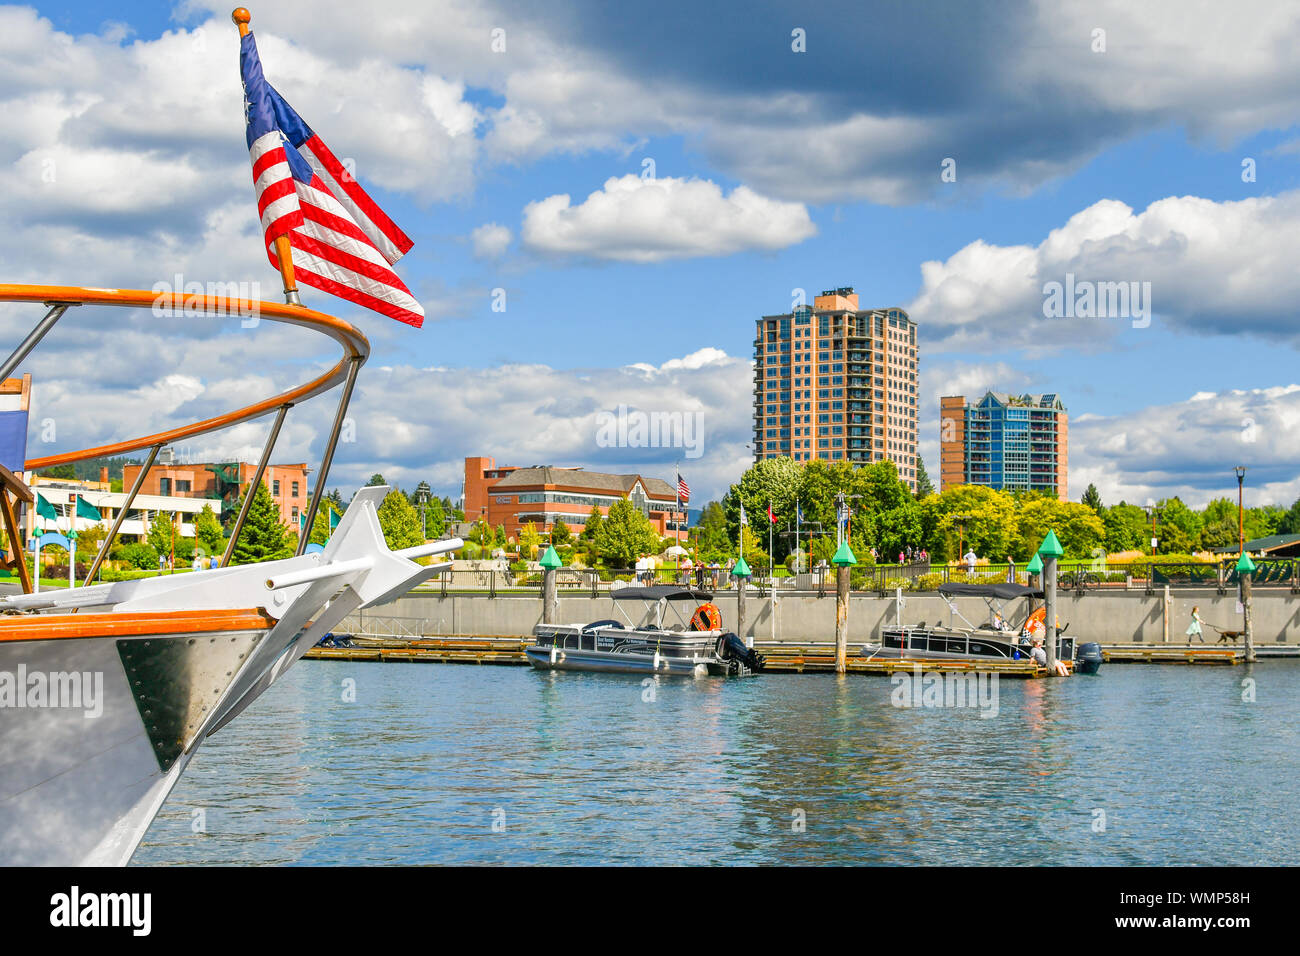 Tourists and locals enjoy the annual wooden boat show at the boardwalk in the mountain town of Coeur d'Alene, Idaho, in the Inland Northwest. Stock Photo